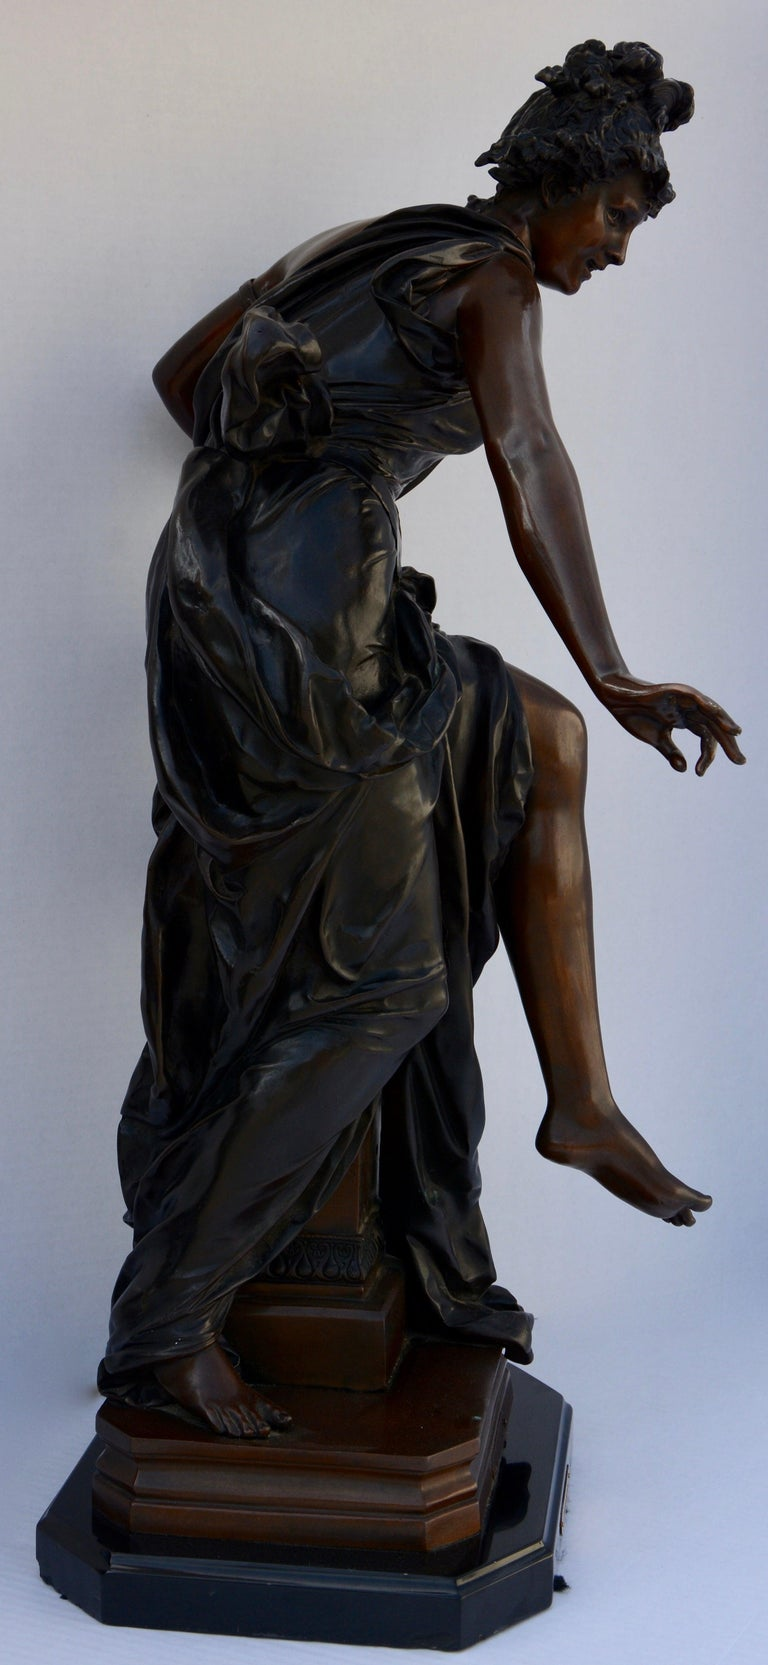 This is a late 19th century Le Melodie bronze sculpture by Albert-Ernest Carrier-Belleuse. It features a lady with her harp and lovely attire. The piece is marked.